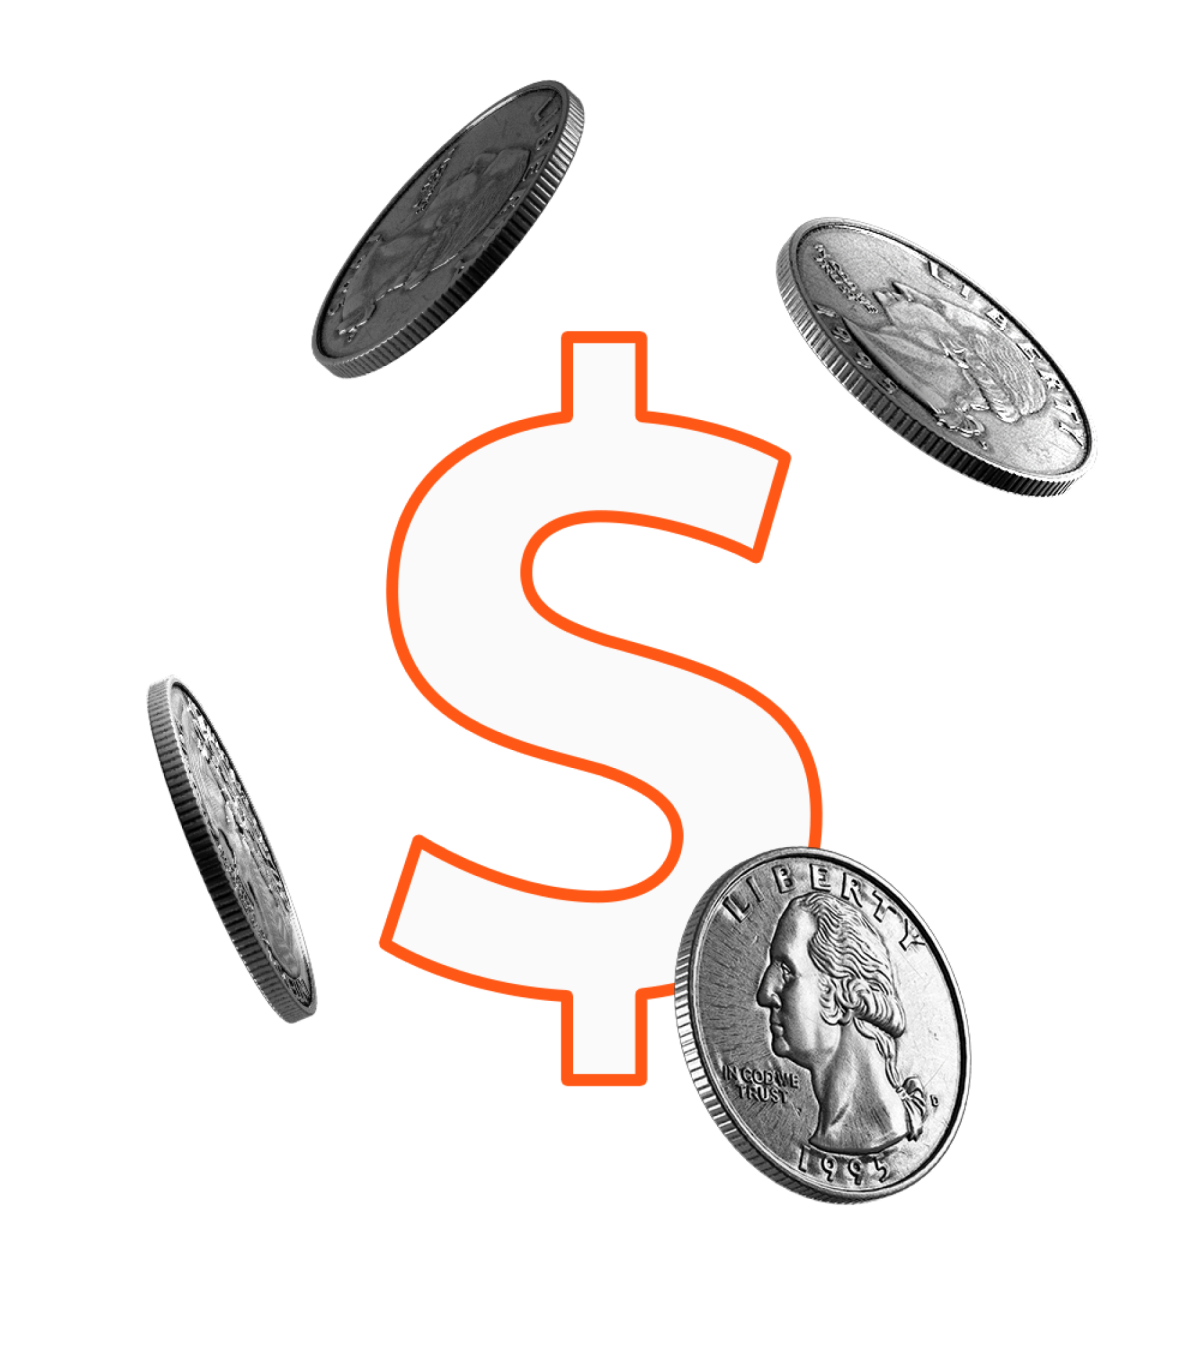 Quarters fall around large orange dollar sign